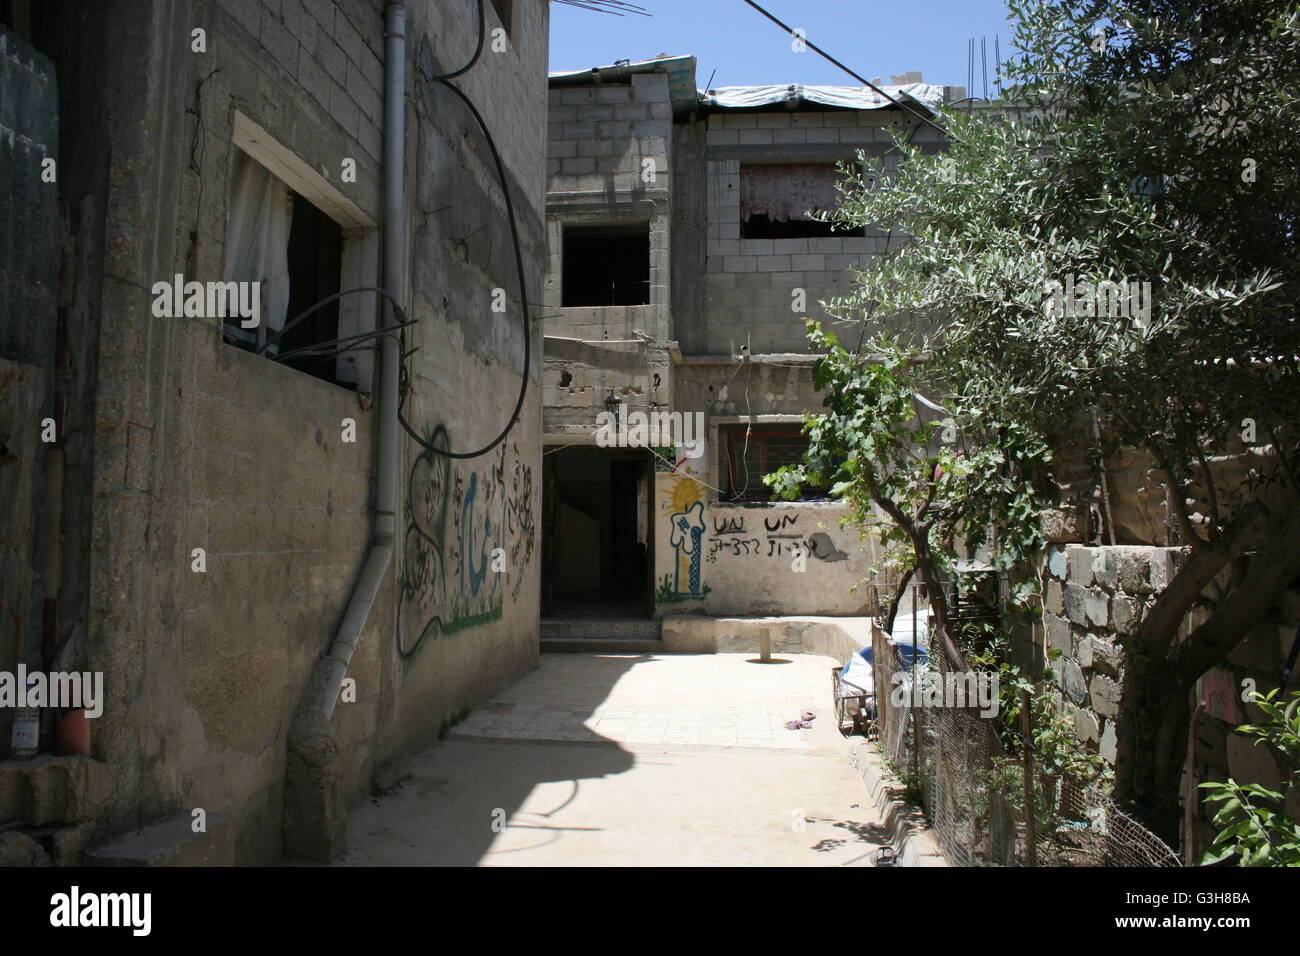 Gasa, Palestinian Territories. 5th June, 2016. The house of family al-Cheisi in Gasa, Palestinian Territories, 5 - Stock Image